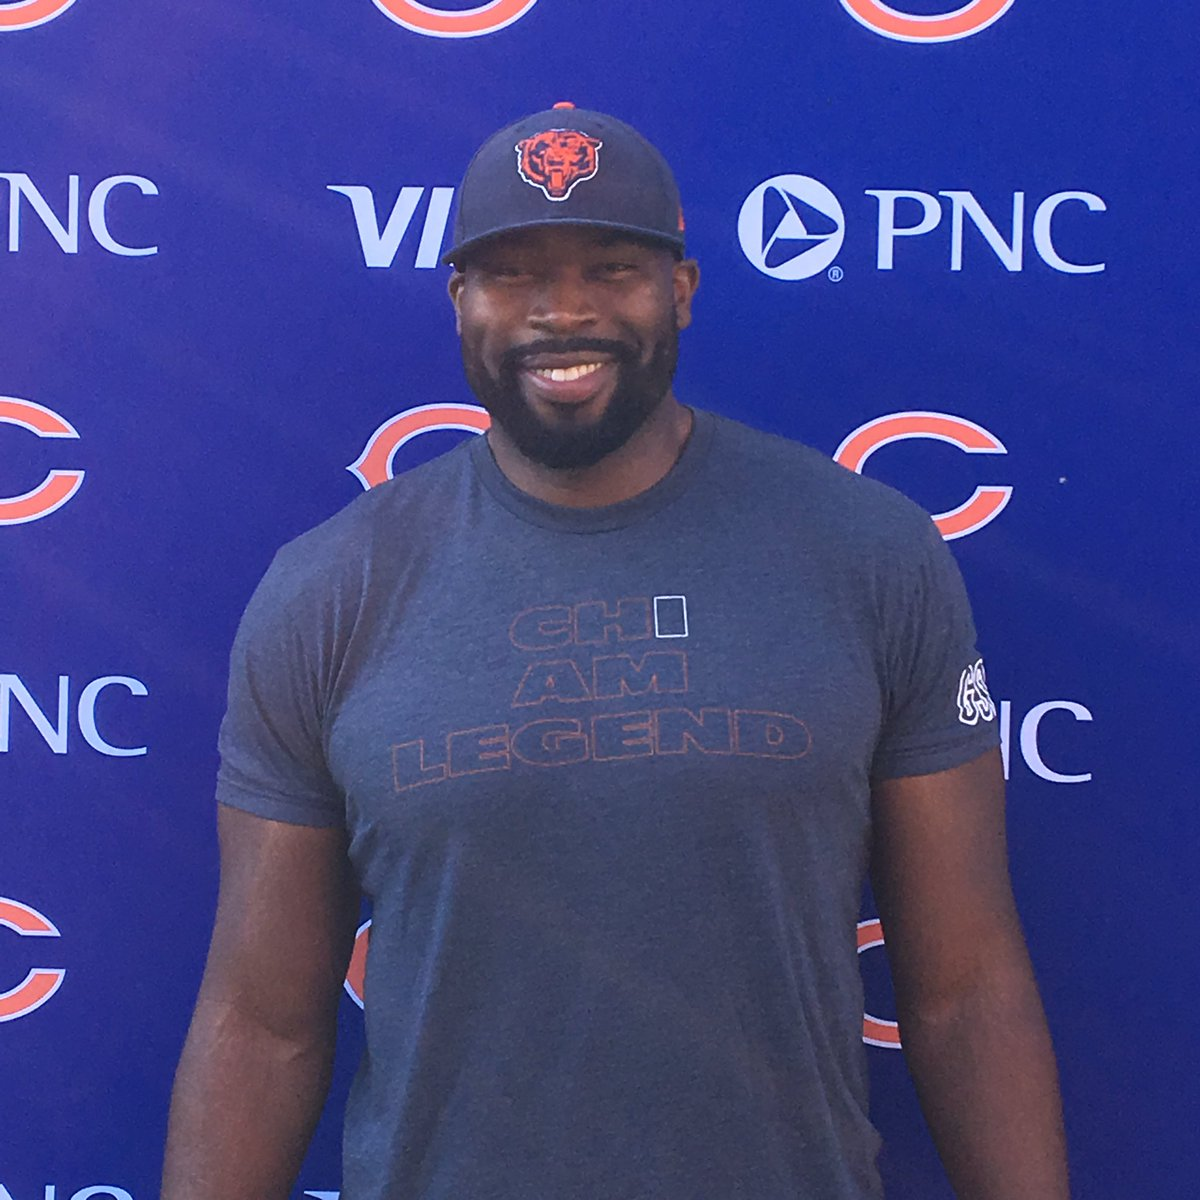 If you're at the @ChicagoBears game, swing by the @Visa and @PNCBank #VirtualFittingRoom, try on some gear, and say hi! #promotion <br>http://pic.twitter.com/PN3n6zR4nR